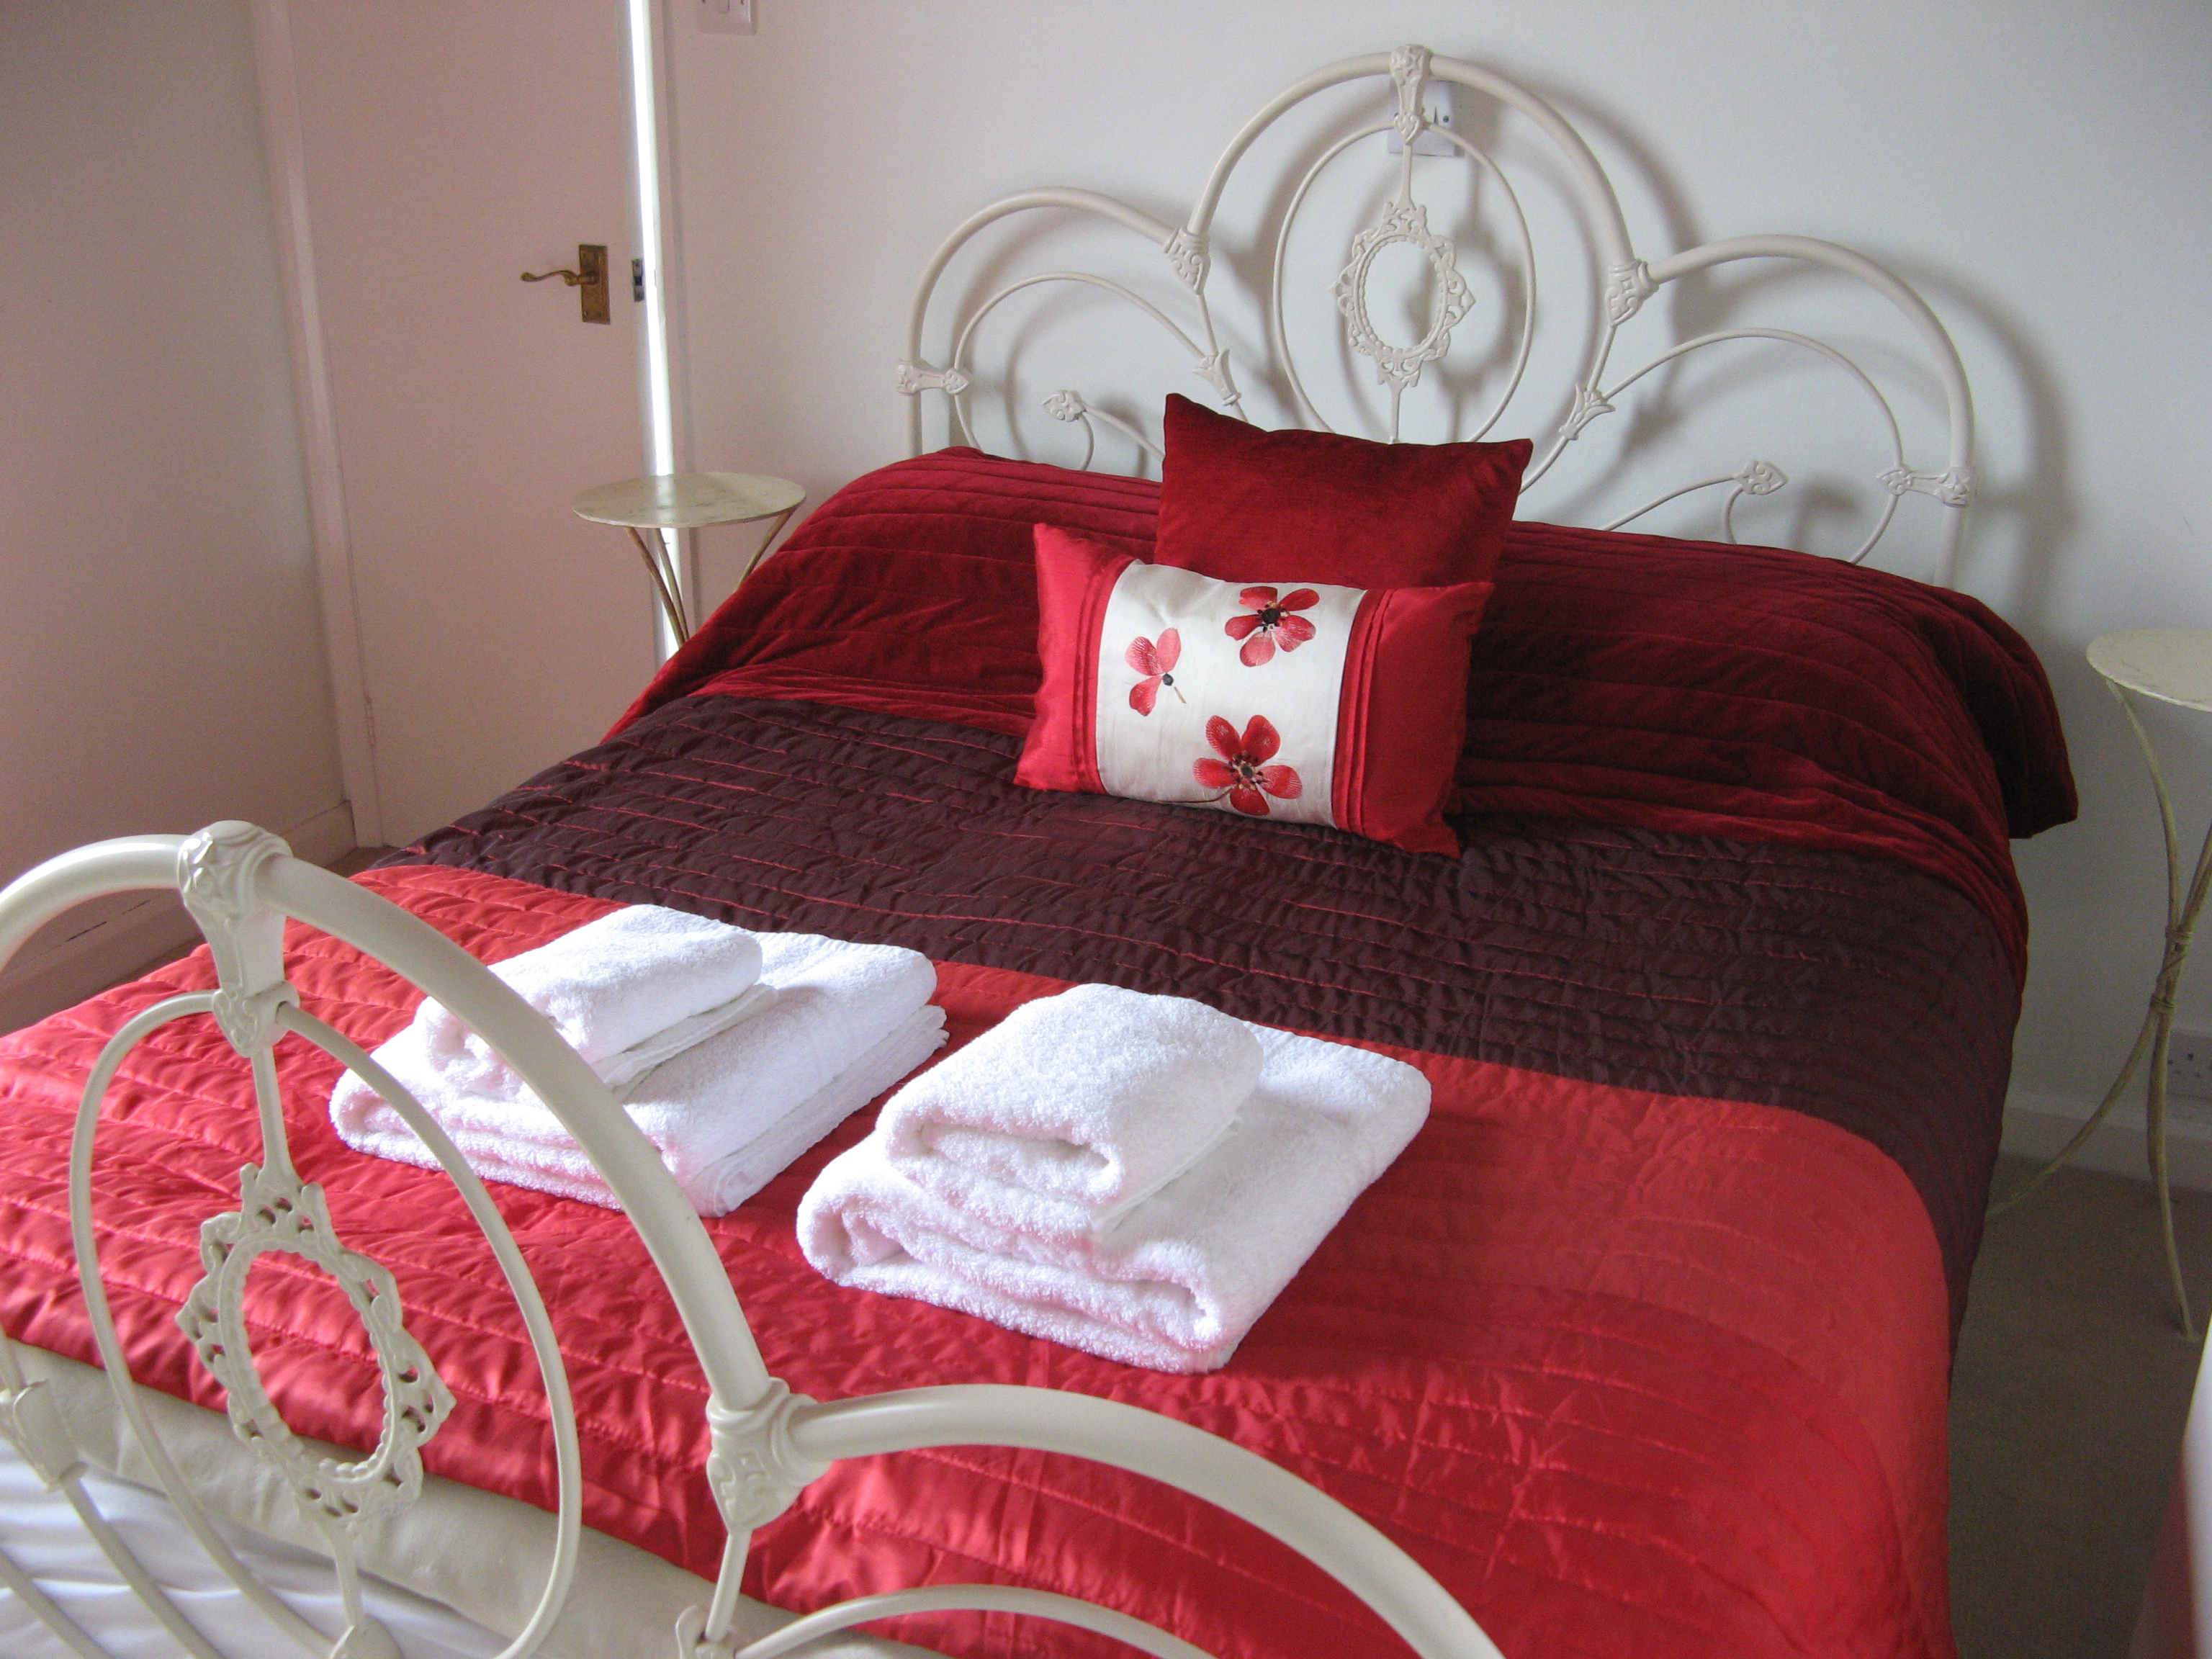 bedroom at blenheim lodge, bowness on windermere, lake district